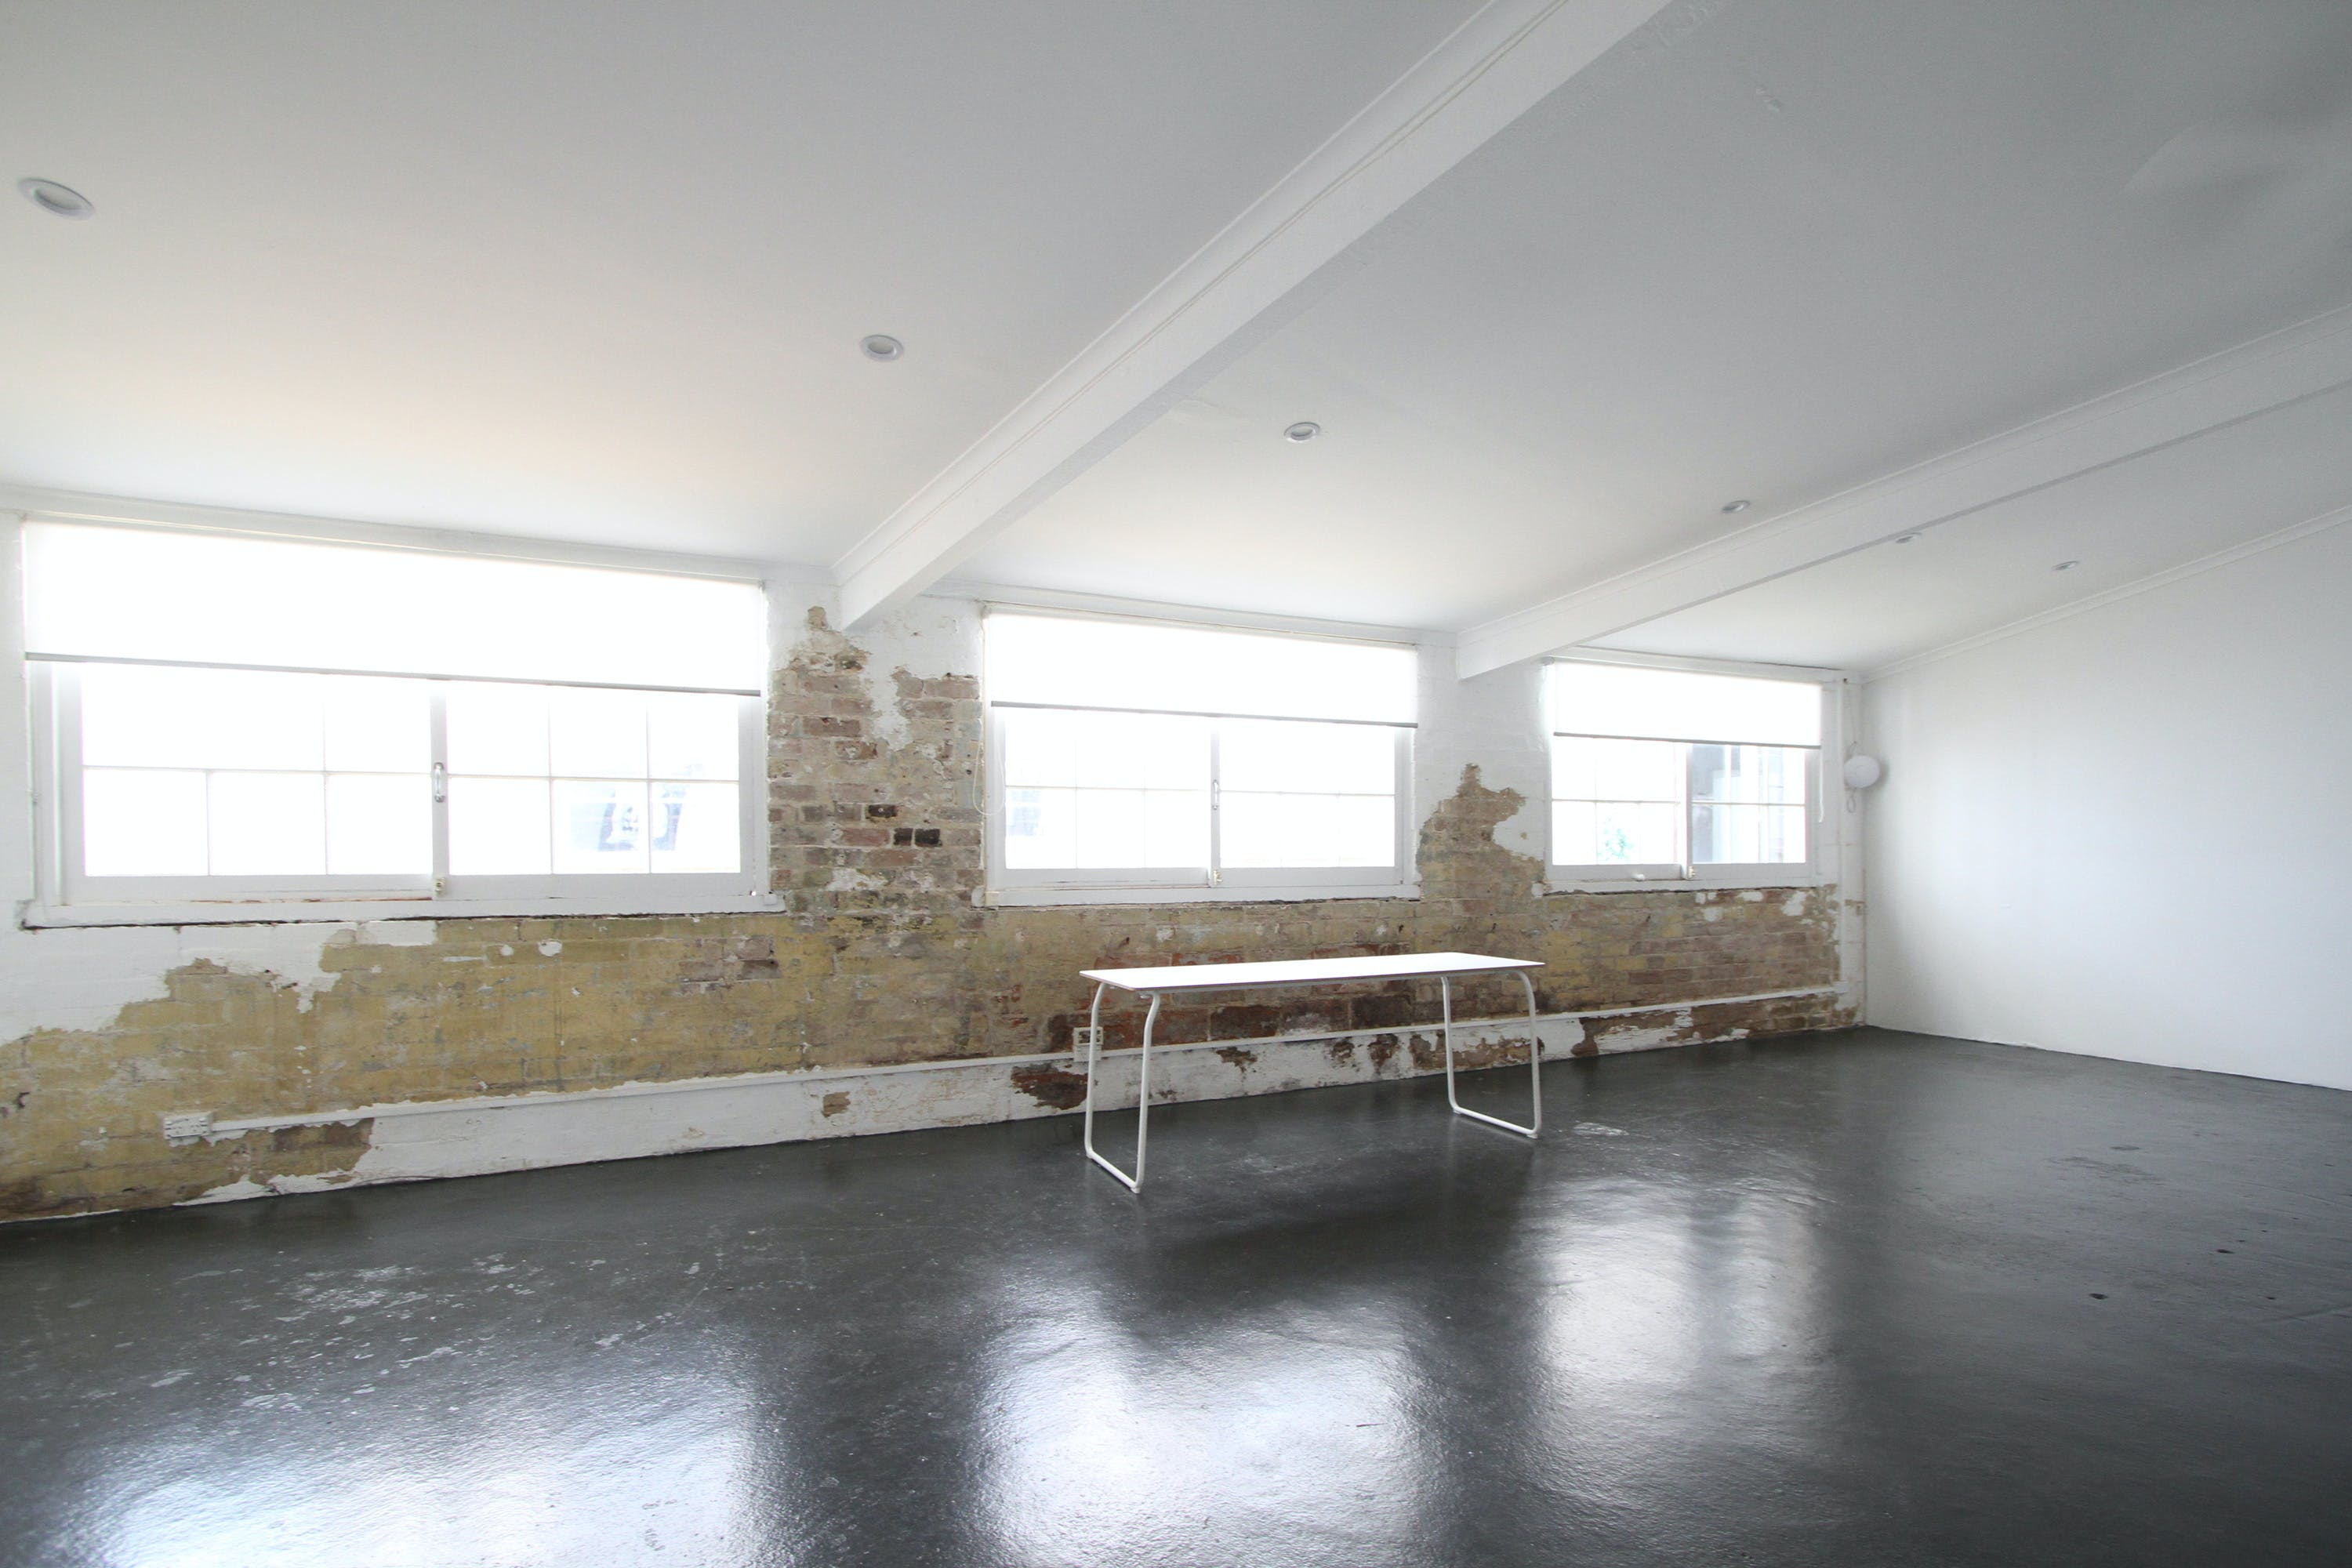 Annexe, multi-use area at Comber Street Studios, image 9